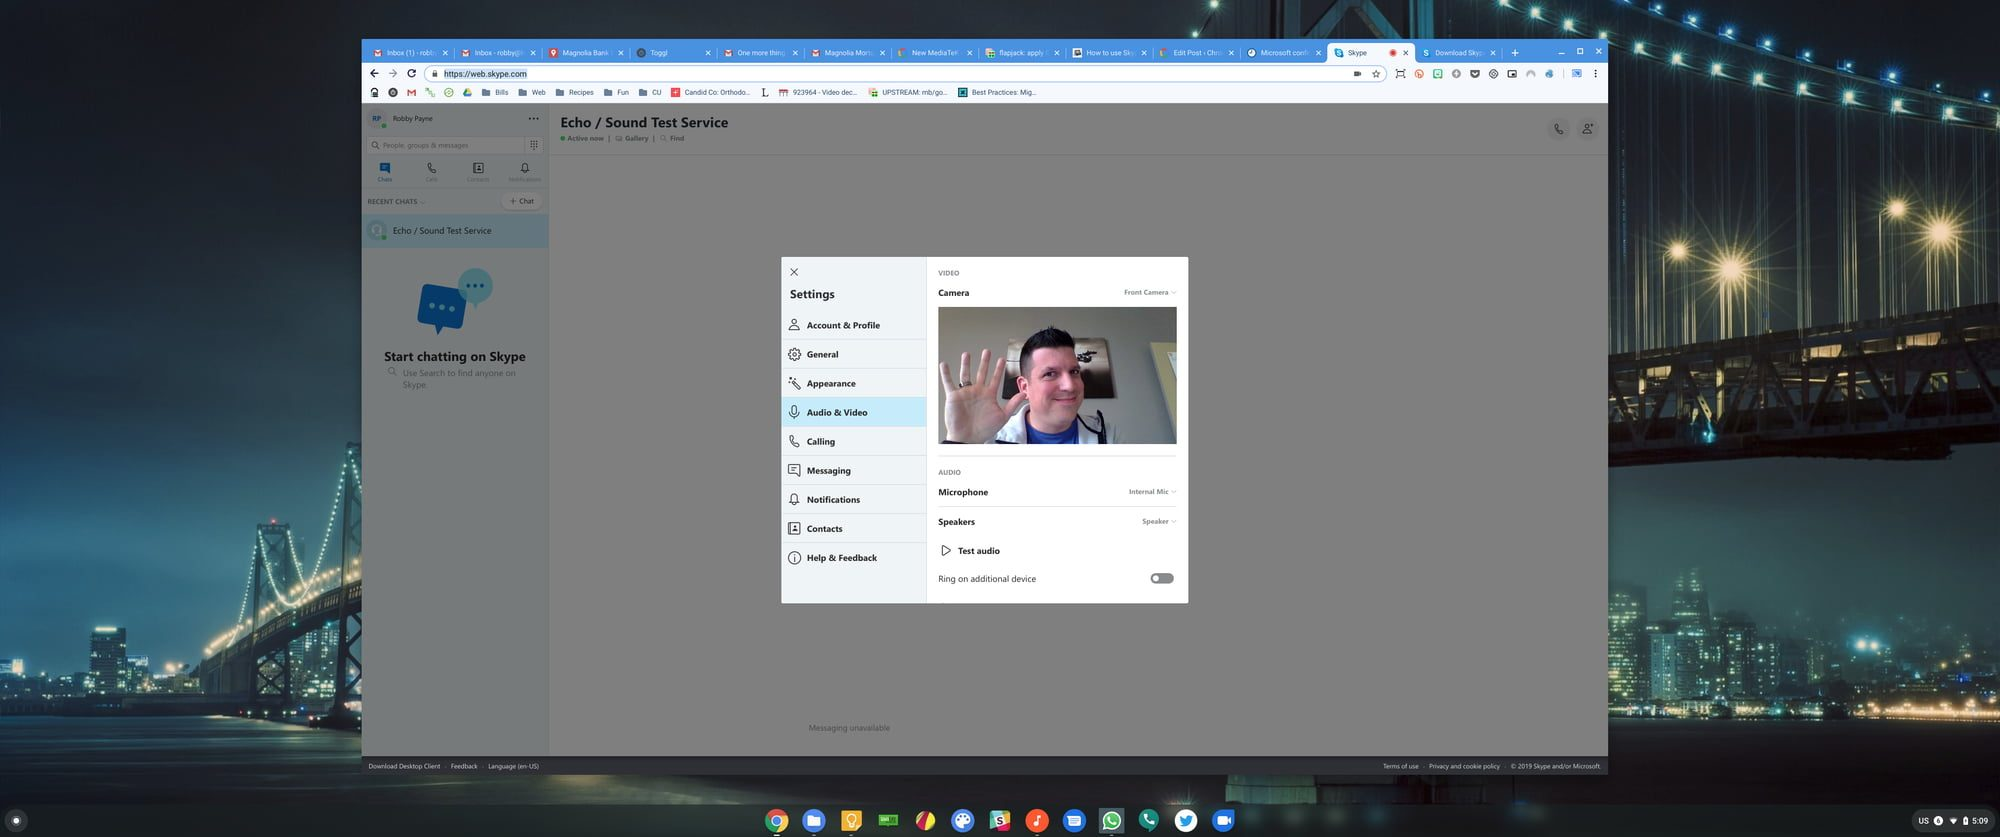 How To Get The Updated Skype For Web Working On A Chromebook